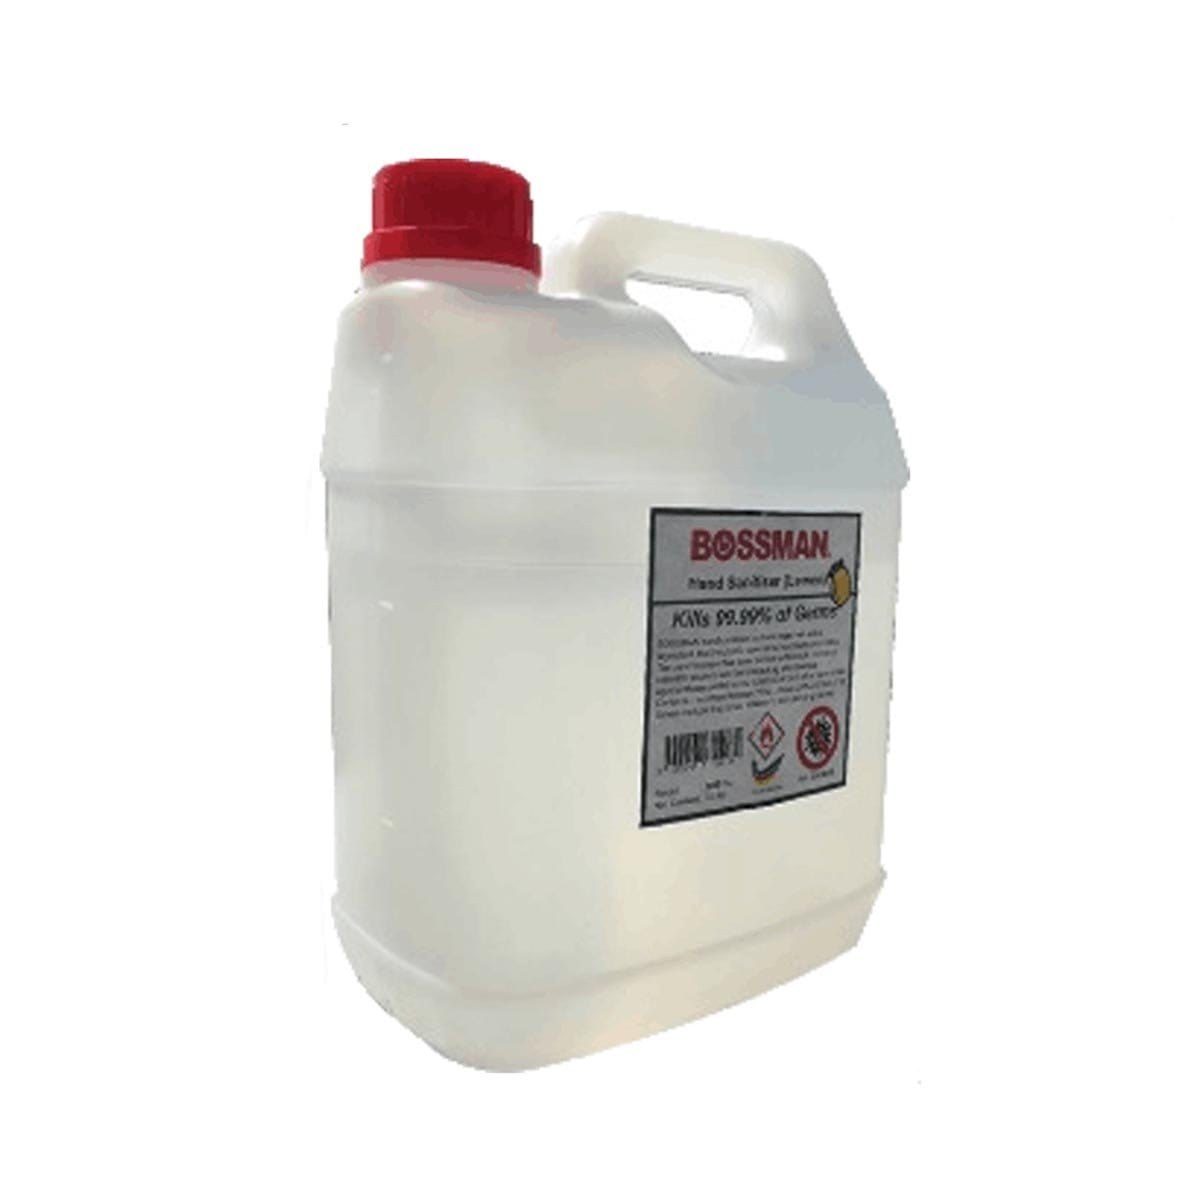 BOSSMAN Ready-to-Use Disinfectant 20L